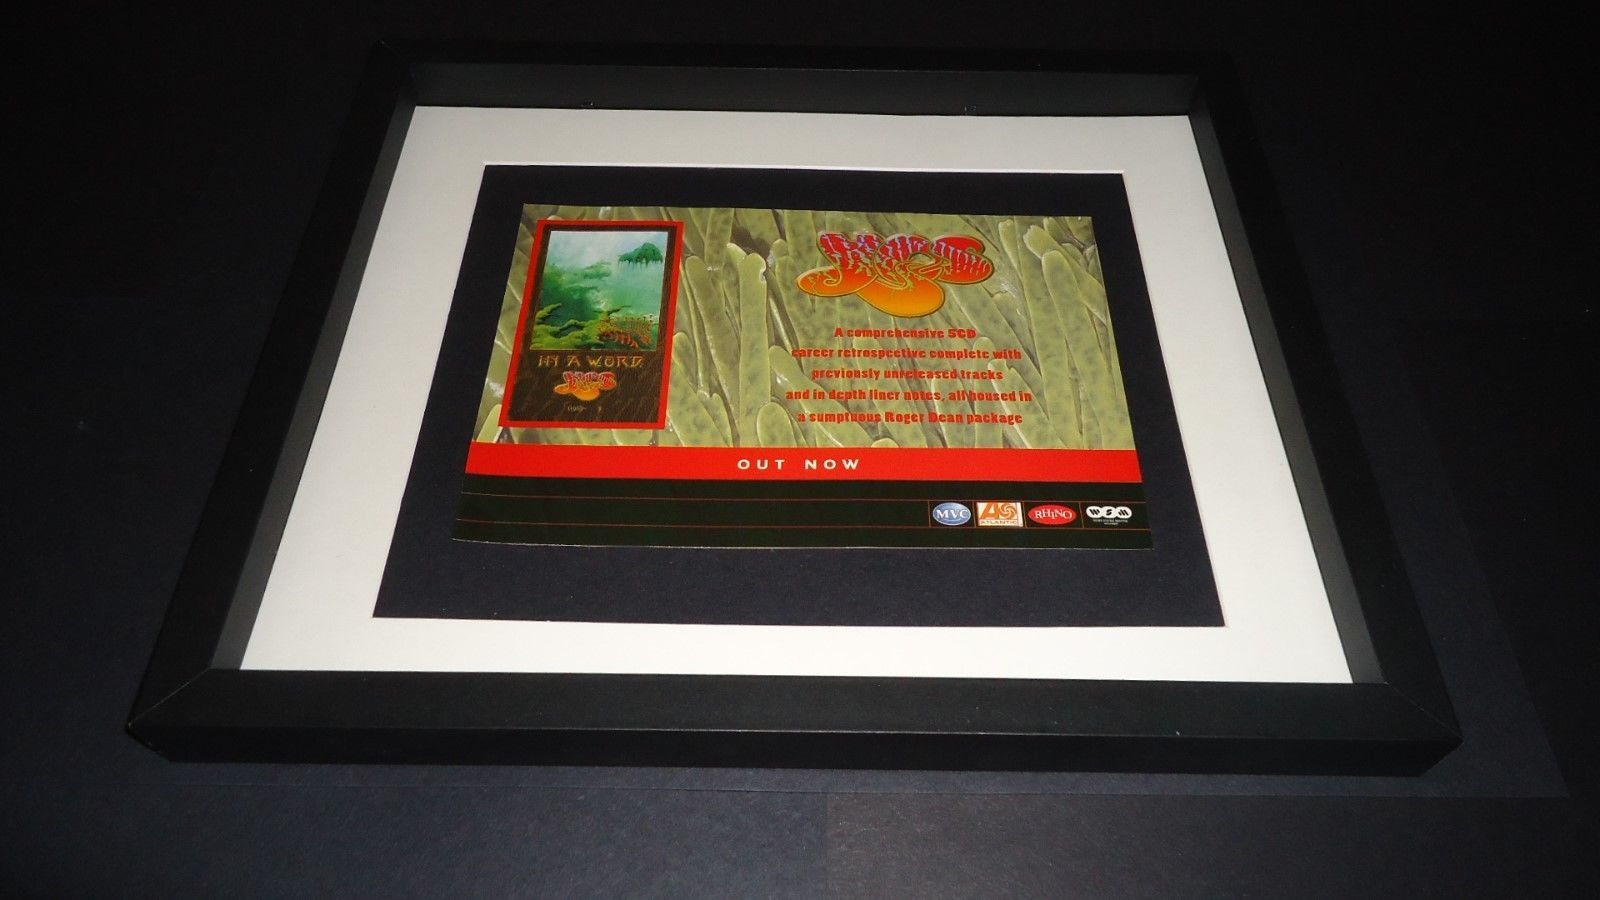 Primary image for Yes-In a Word-2002 Original advert framed